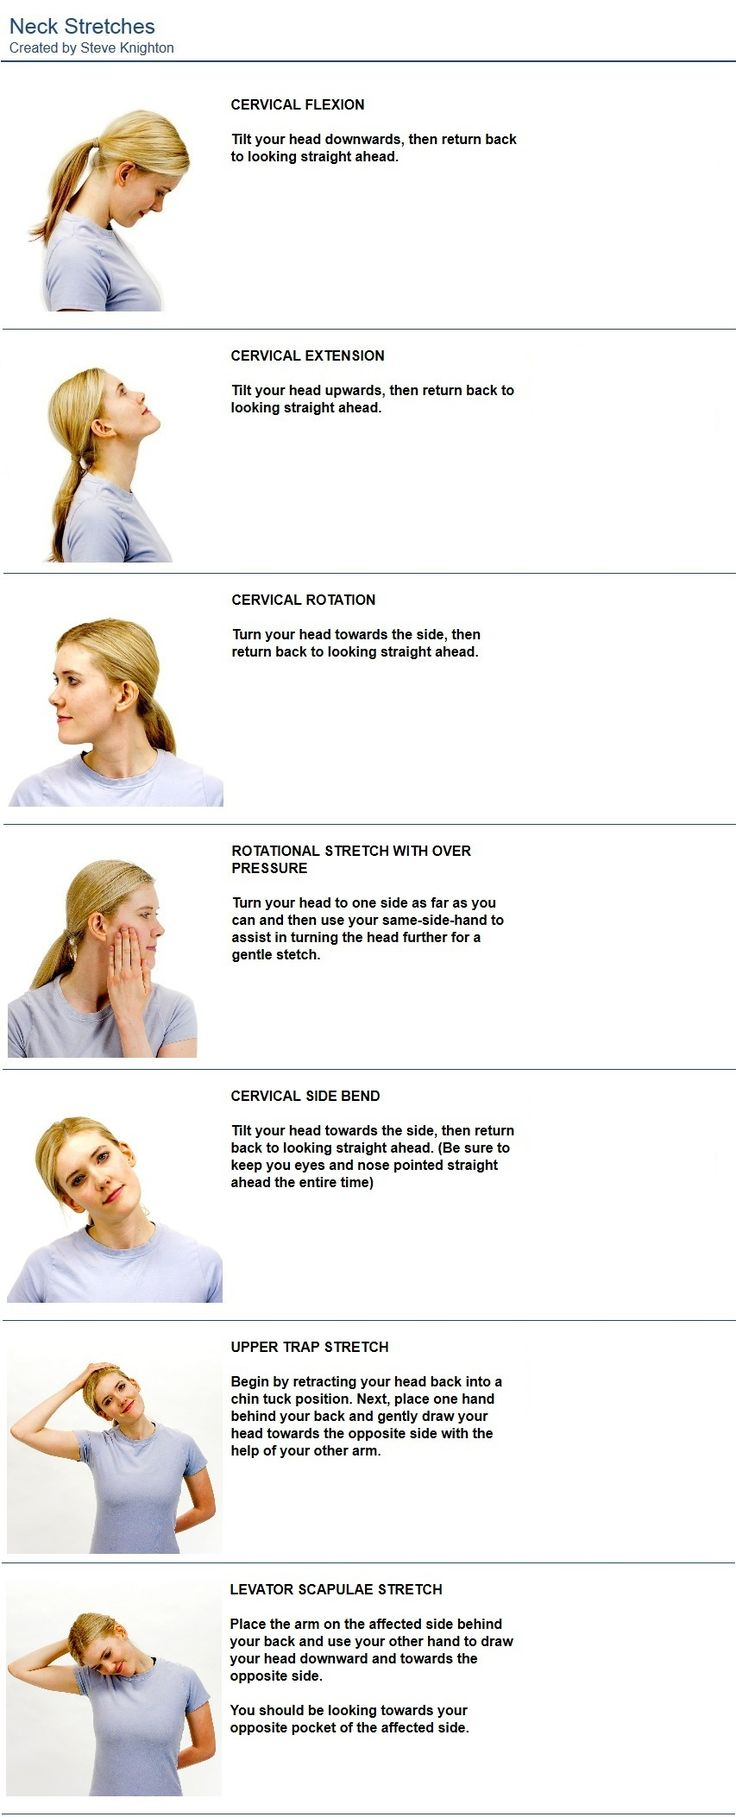 Neck Stretches | Neck Stretches_1.jpg